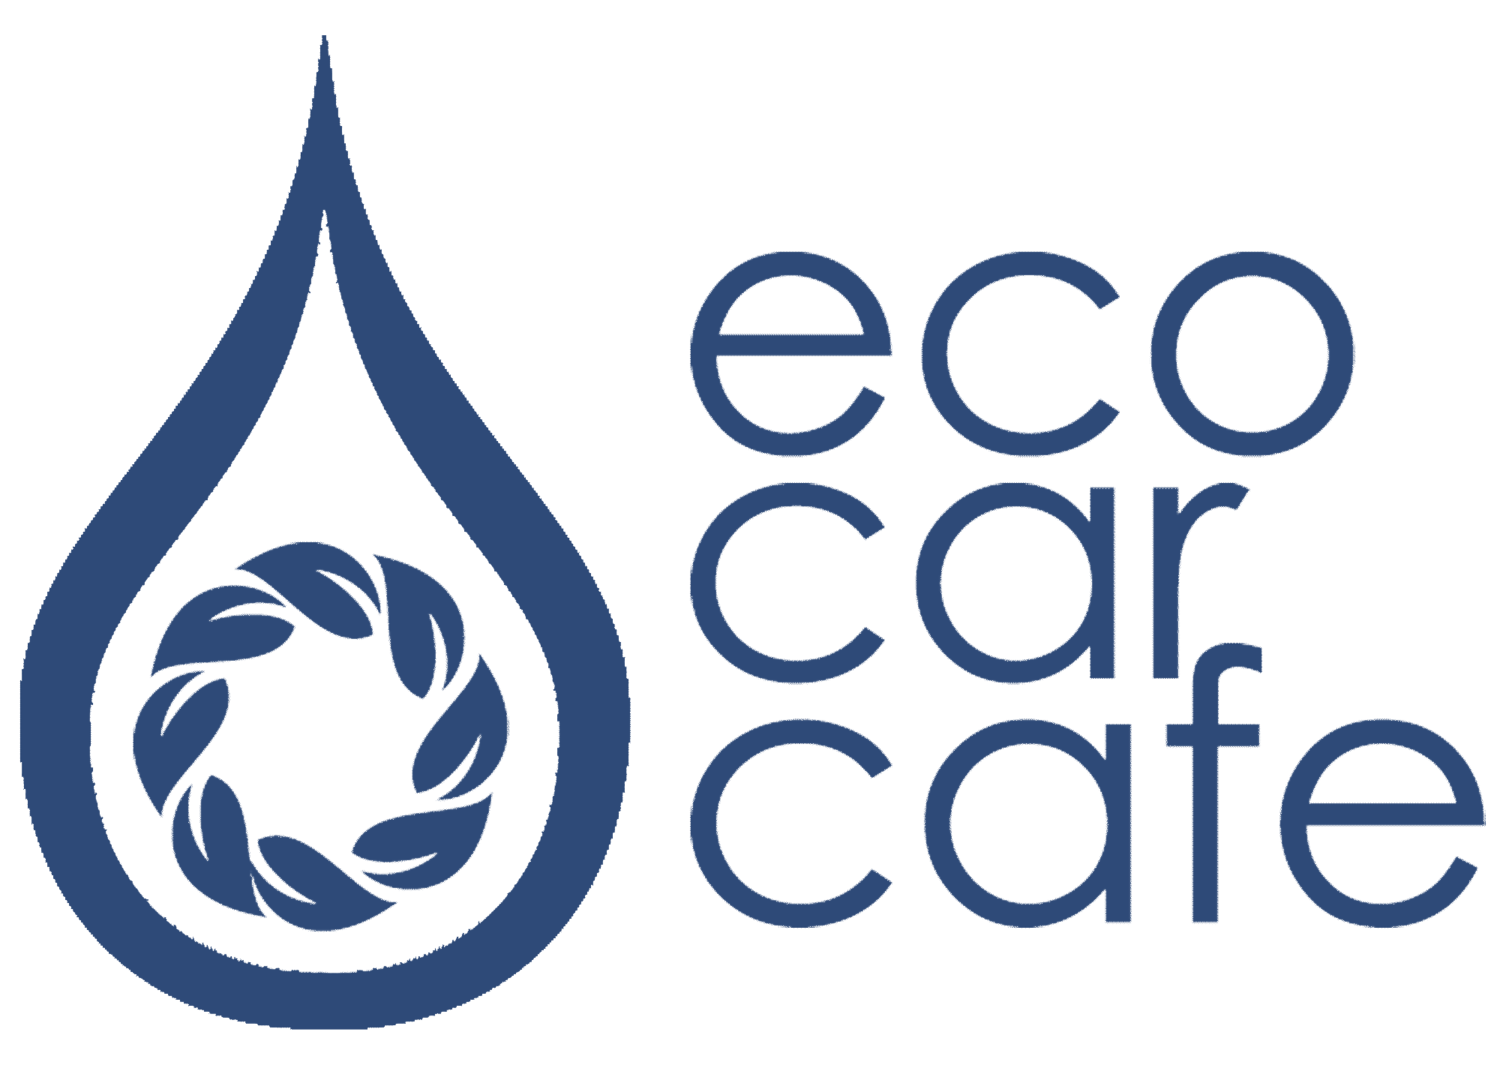 Eco Car Cafe